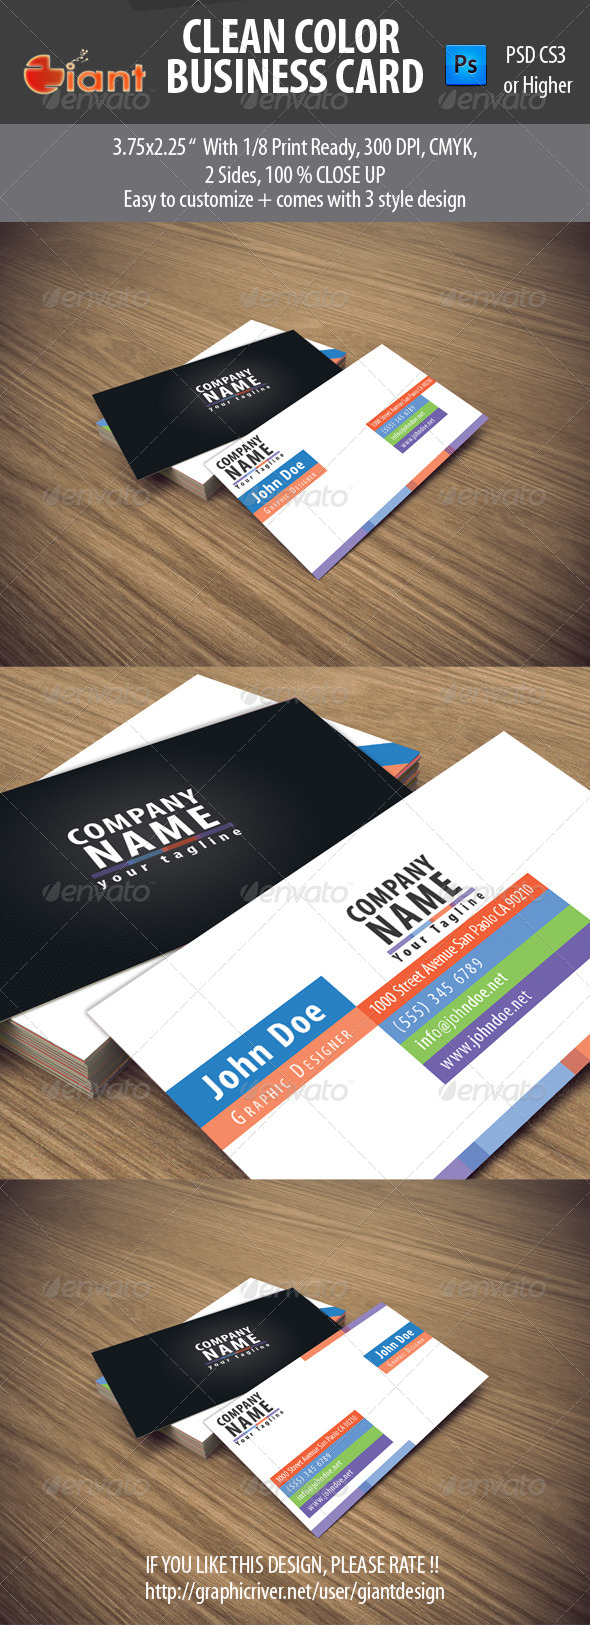 GraphicRiver Clean Color Business Card 5456894